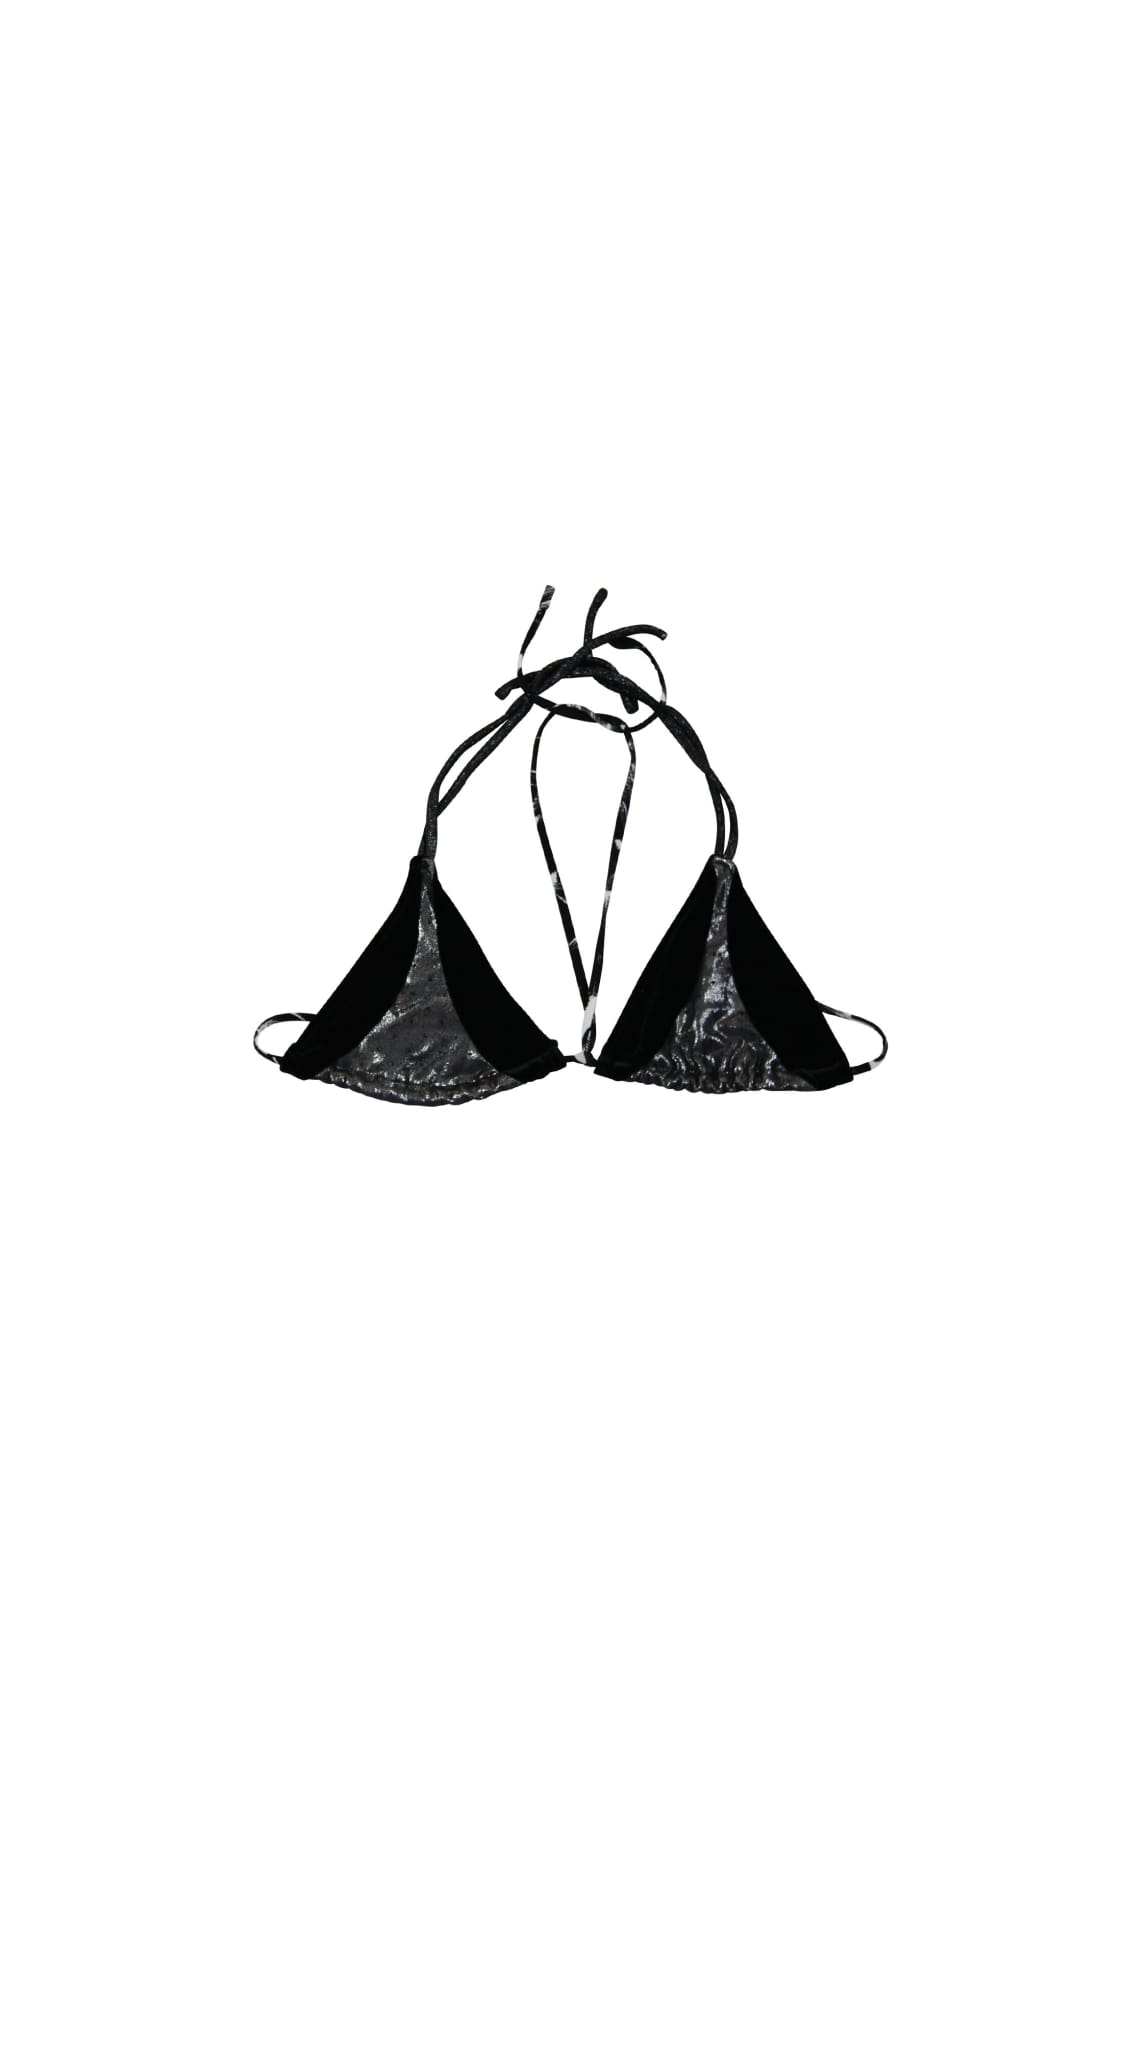 Black Velveteen String Bikini Top (Ink) by Rosina Mae Nineteenth Amendment